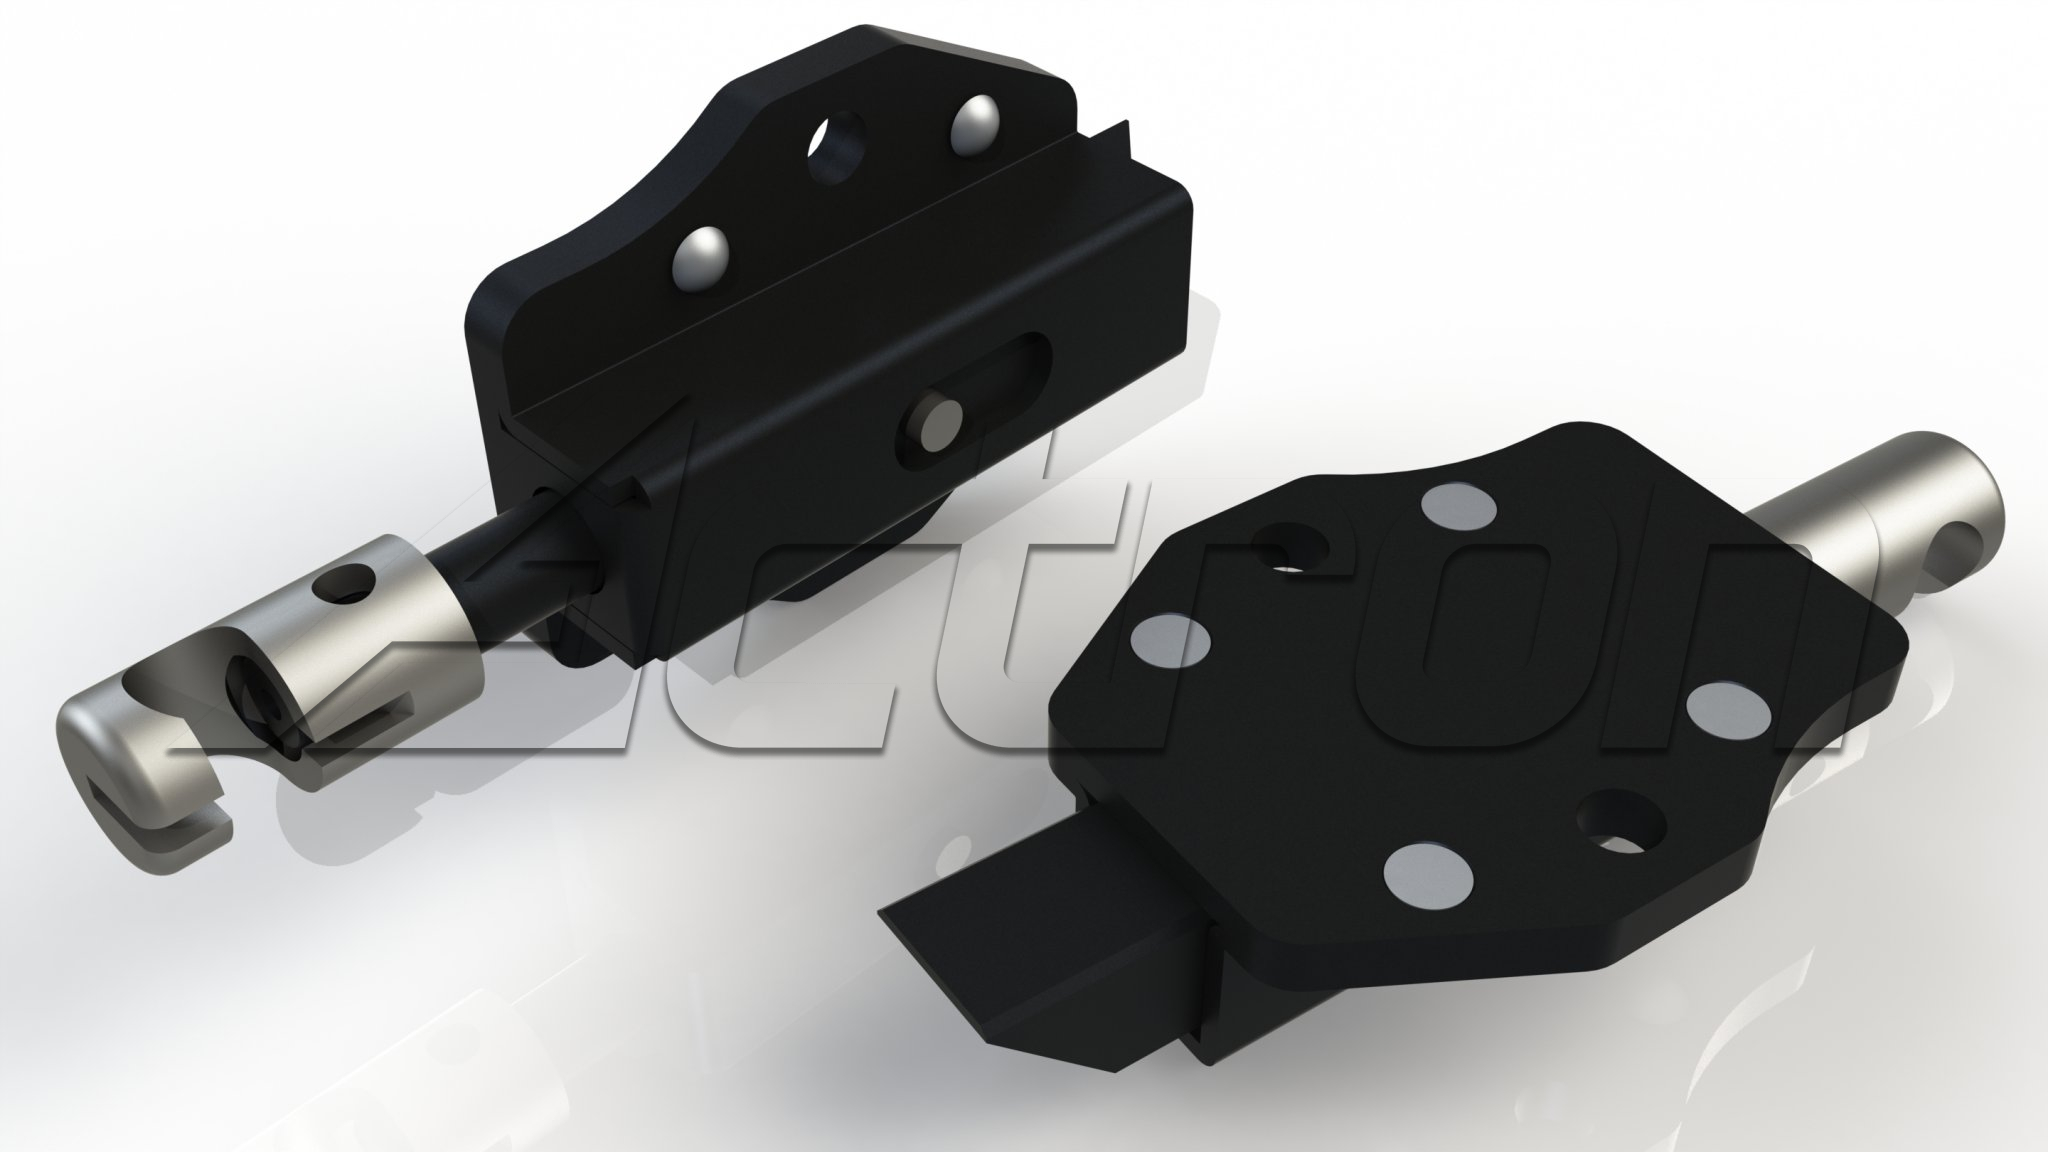 latch-assy-8211-sliding-remote-actuated-3979-a30034.jpg